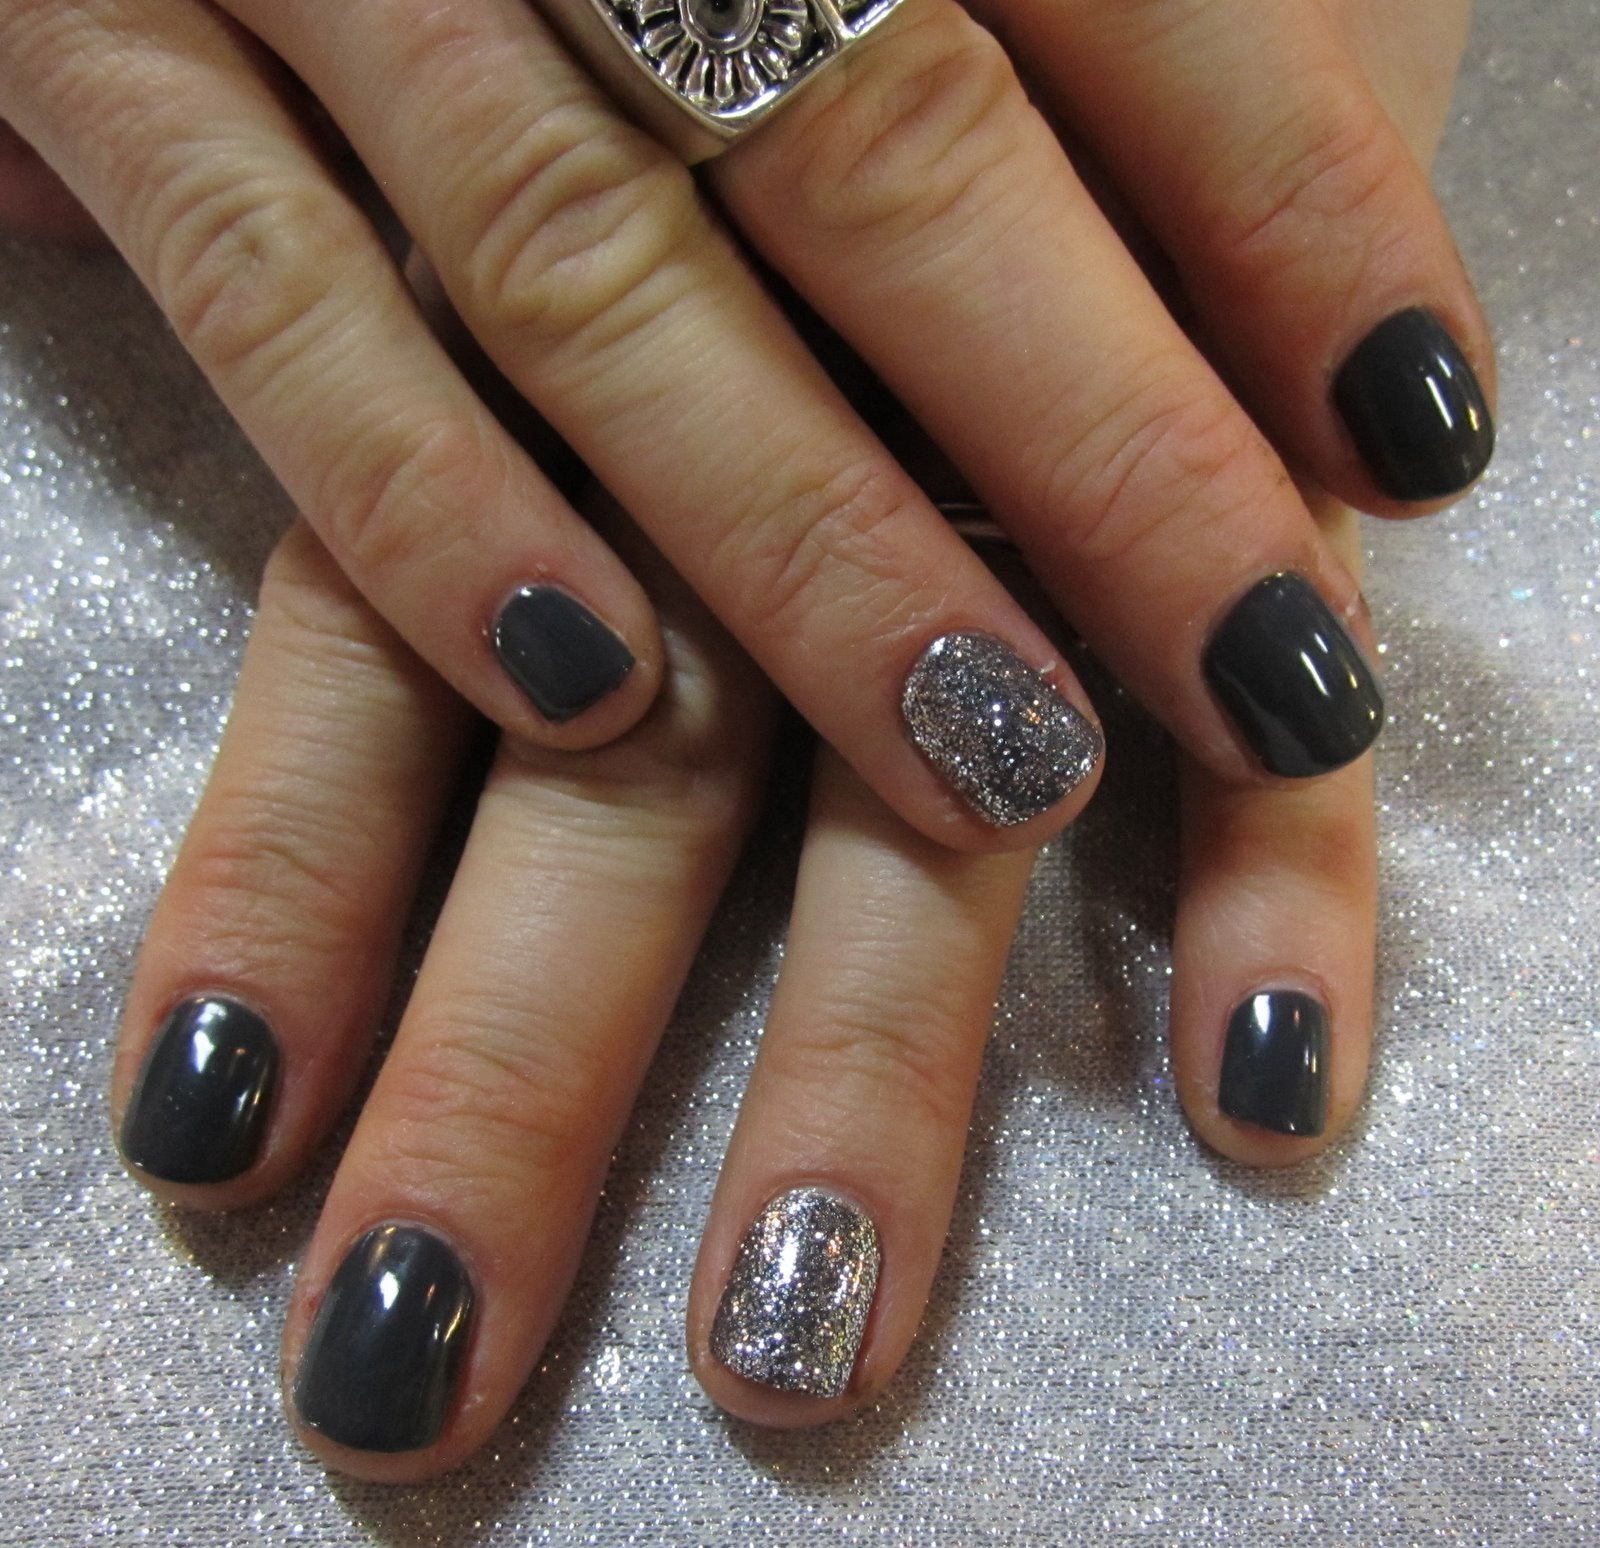 Andrea Pettingill Nails: Shellac Nails With A Little Bling